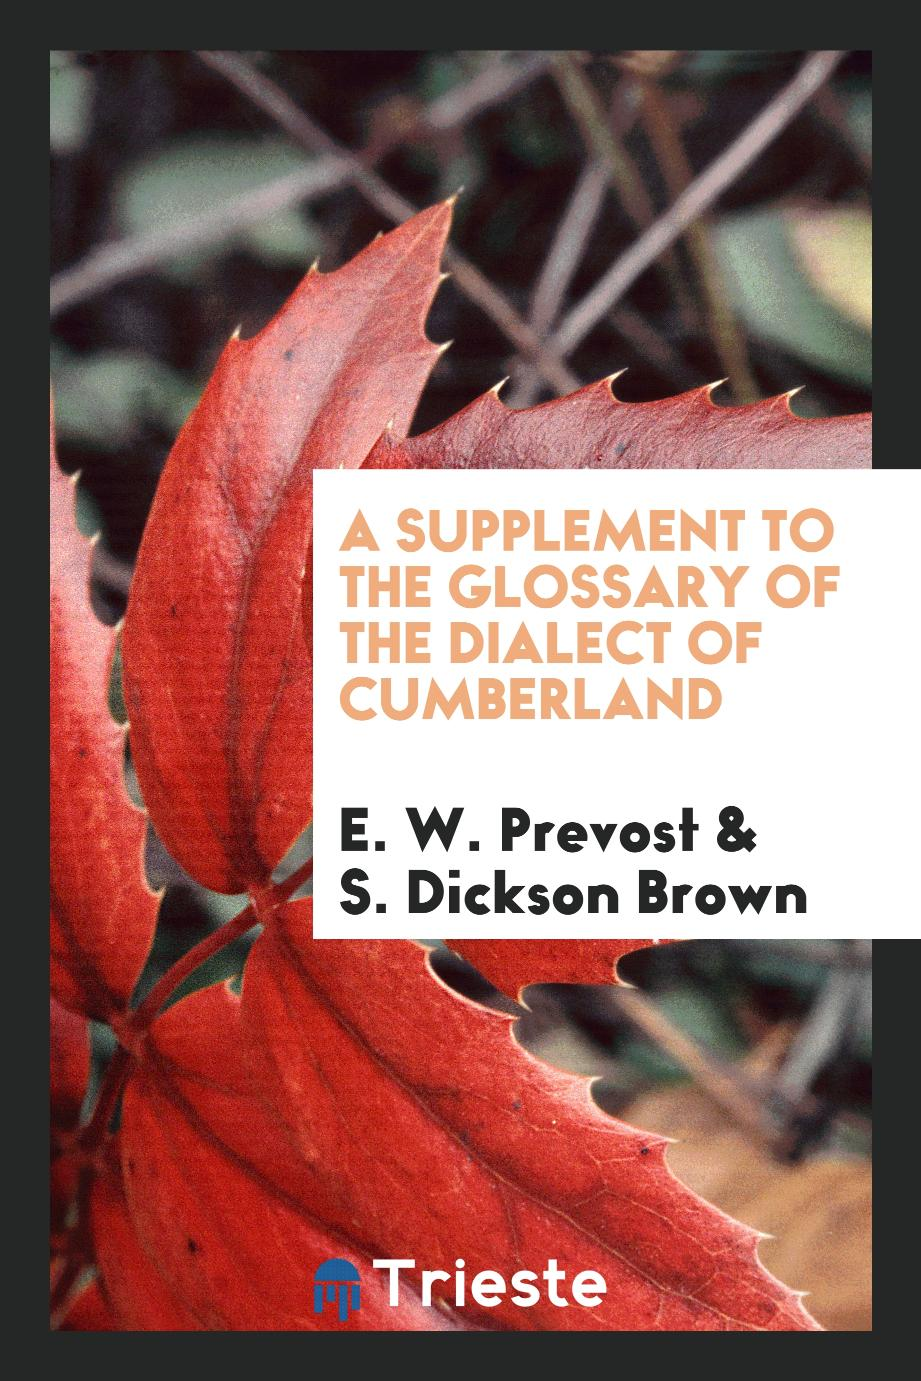 A Supplement to the Glossary of the Dialect of Cumberland